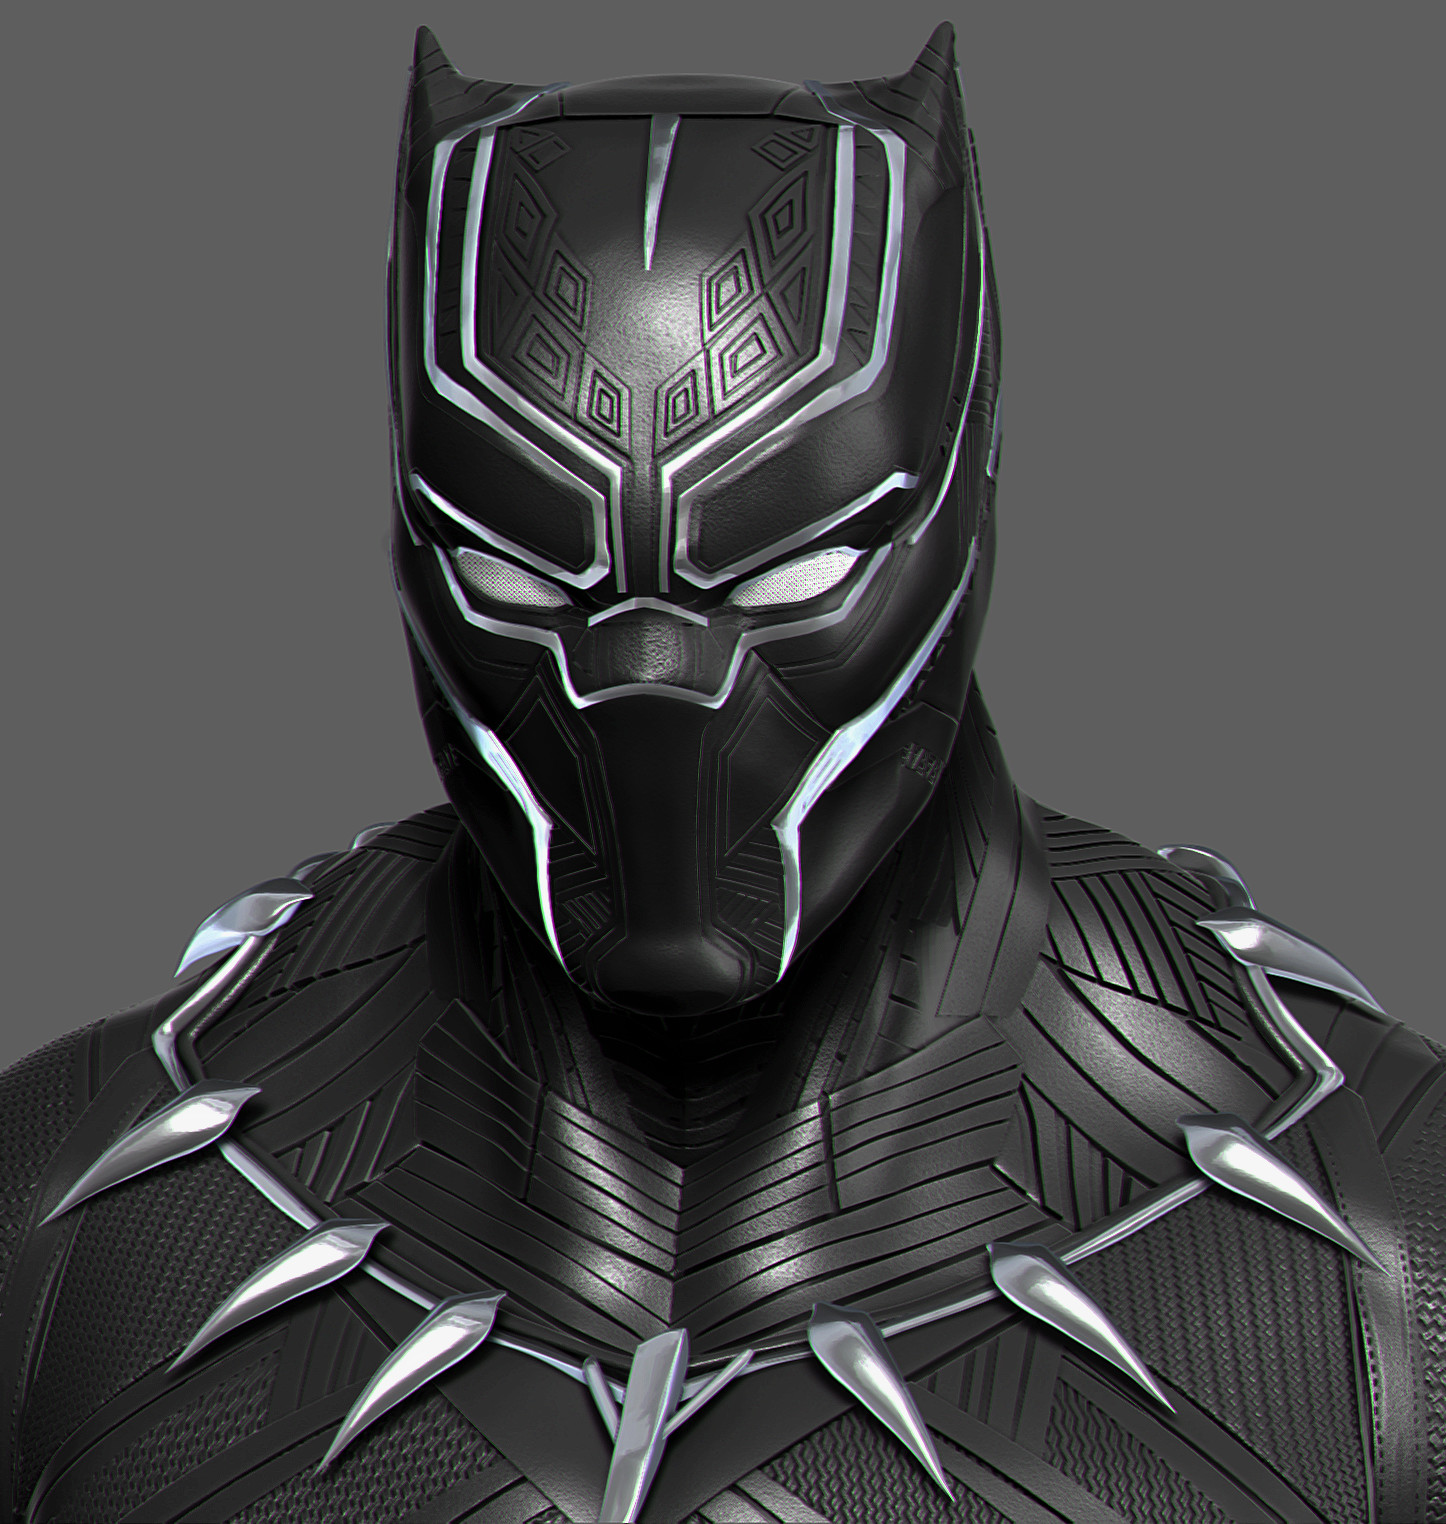 artstation - black panther (civil war suit), mars .